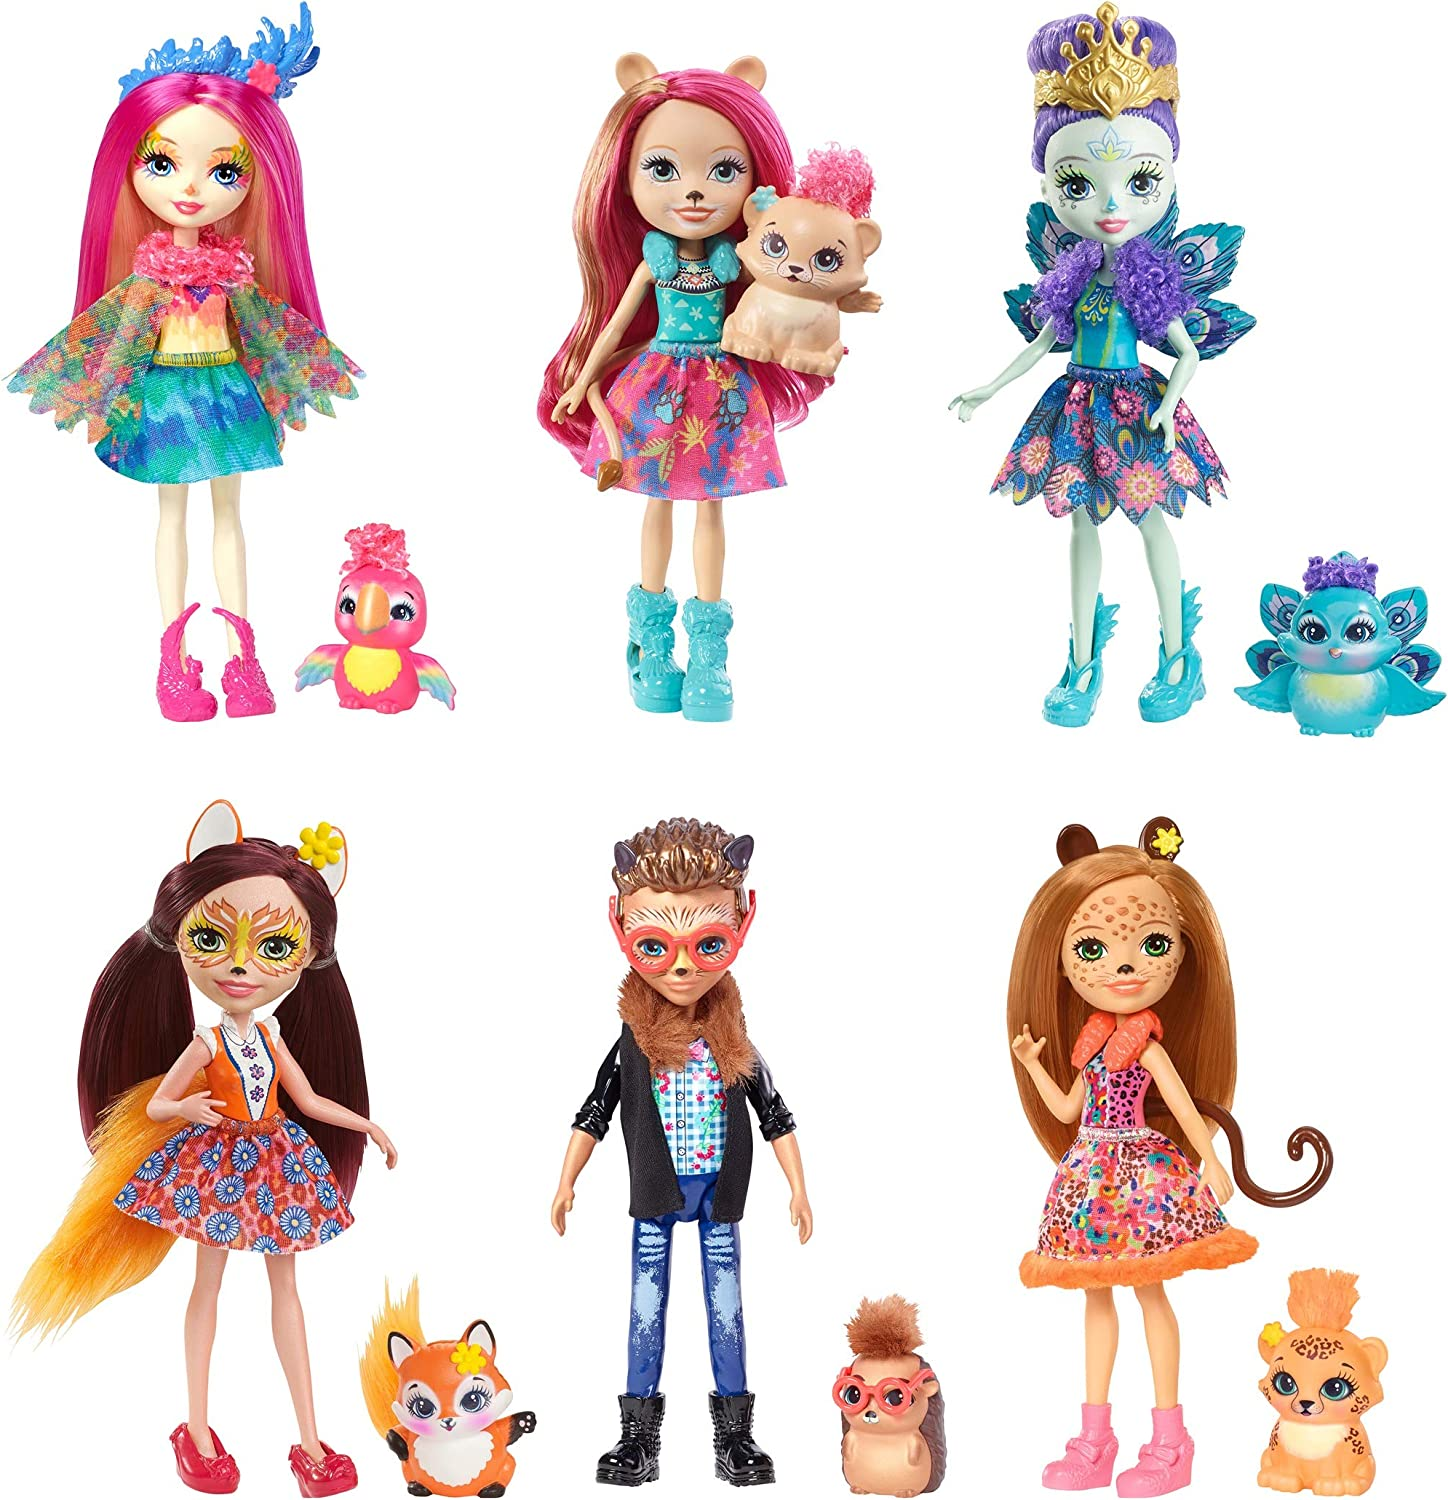 ENCHANTIMALS NATURAL FRIENDS COLLECTION DOLL 6-PACK